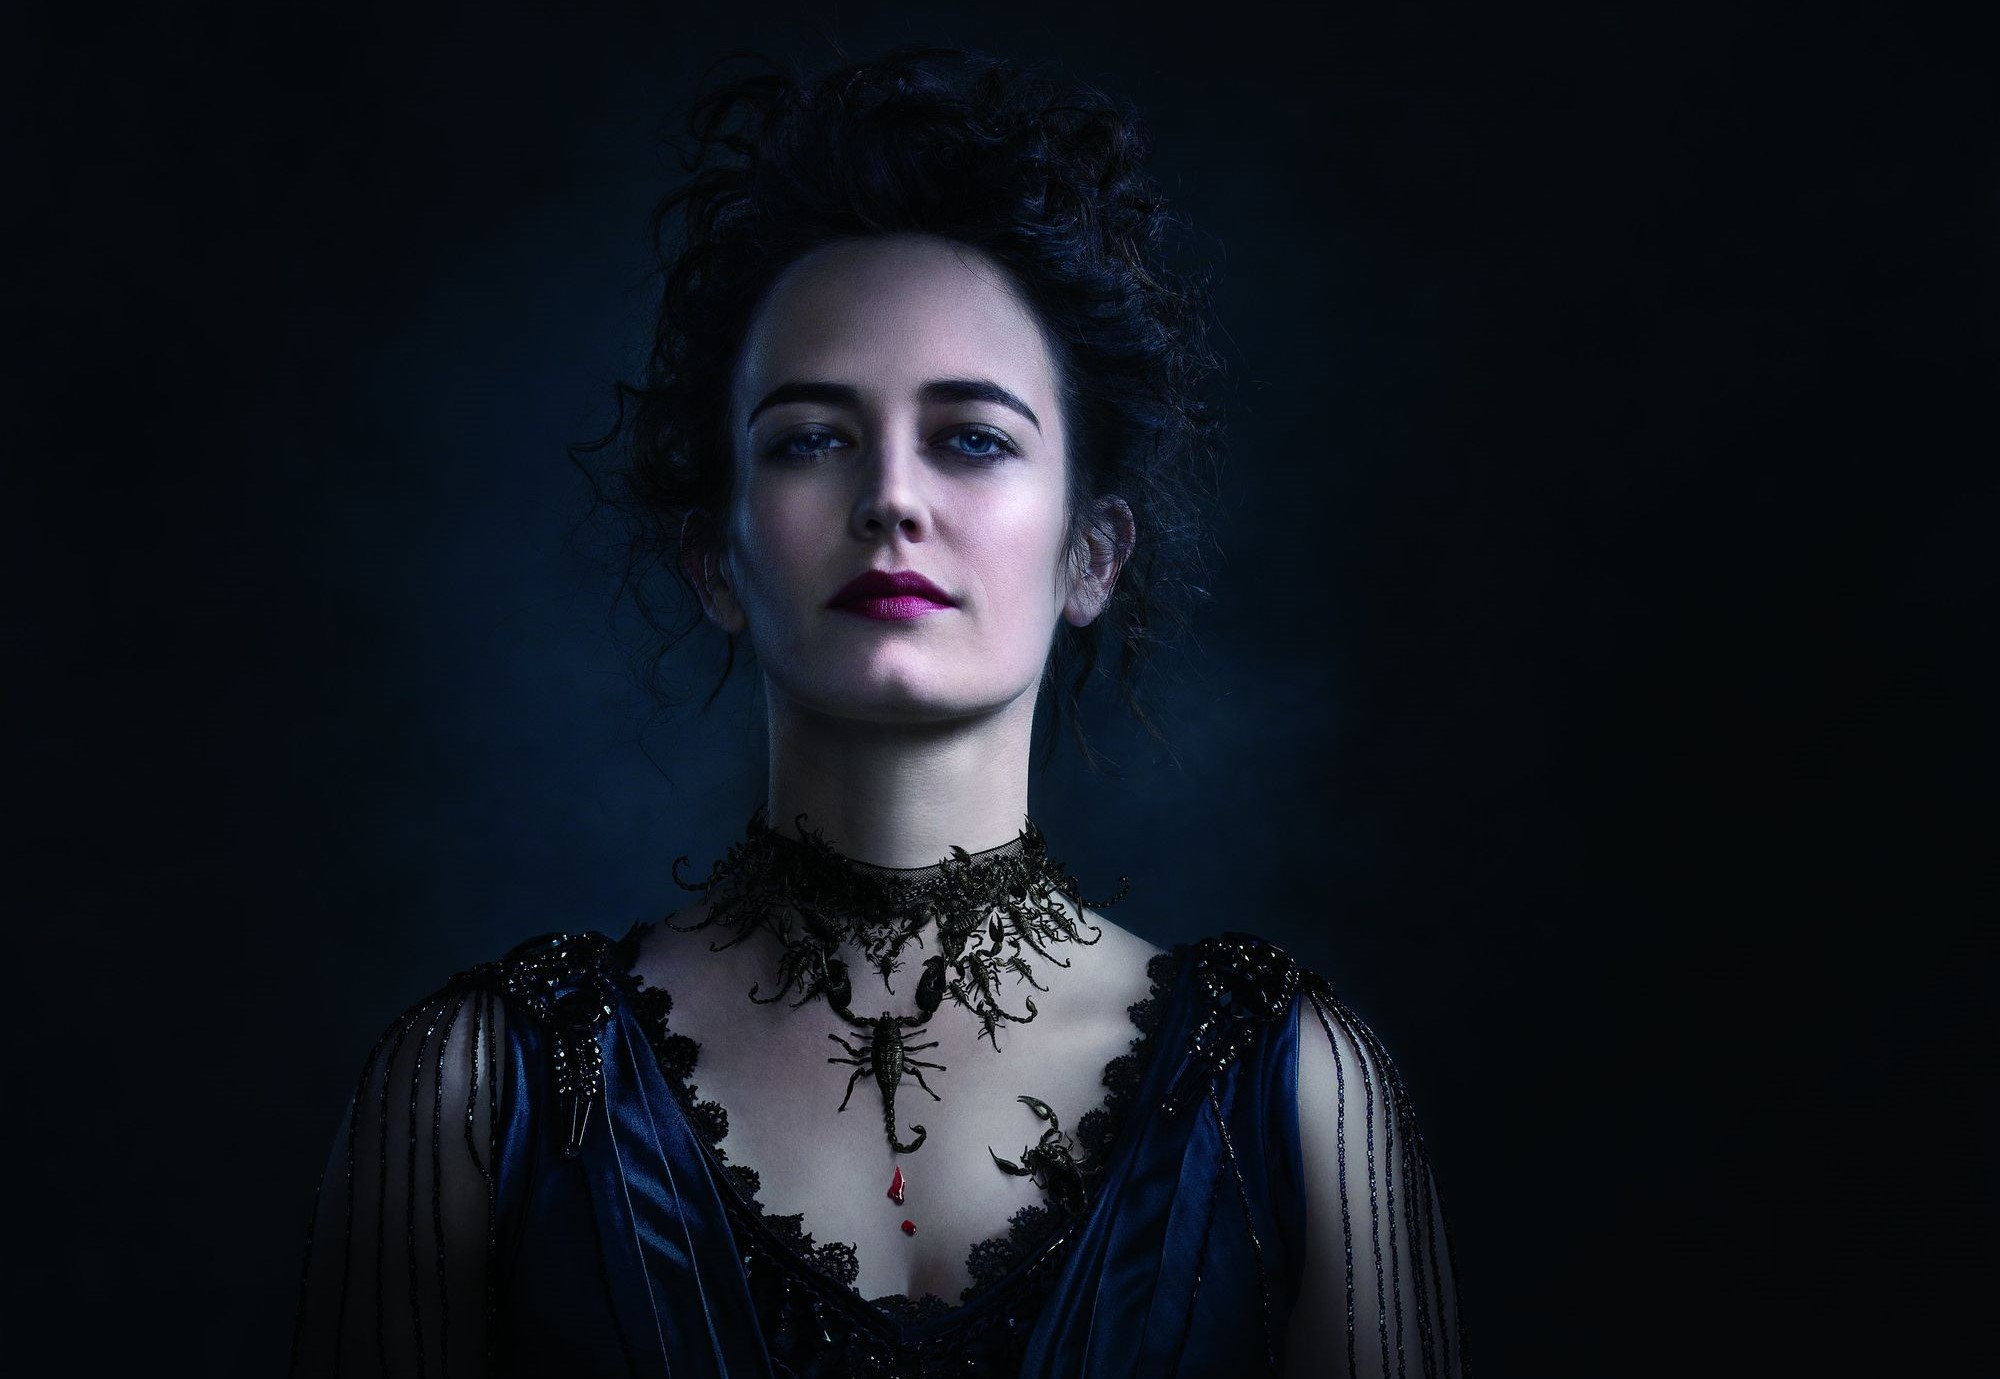 #Analyse Vanessa, Sigmund et l'empire des pulsions (Penny Dreadful 1/5)